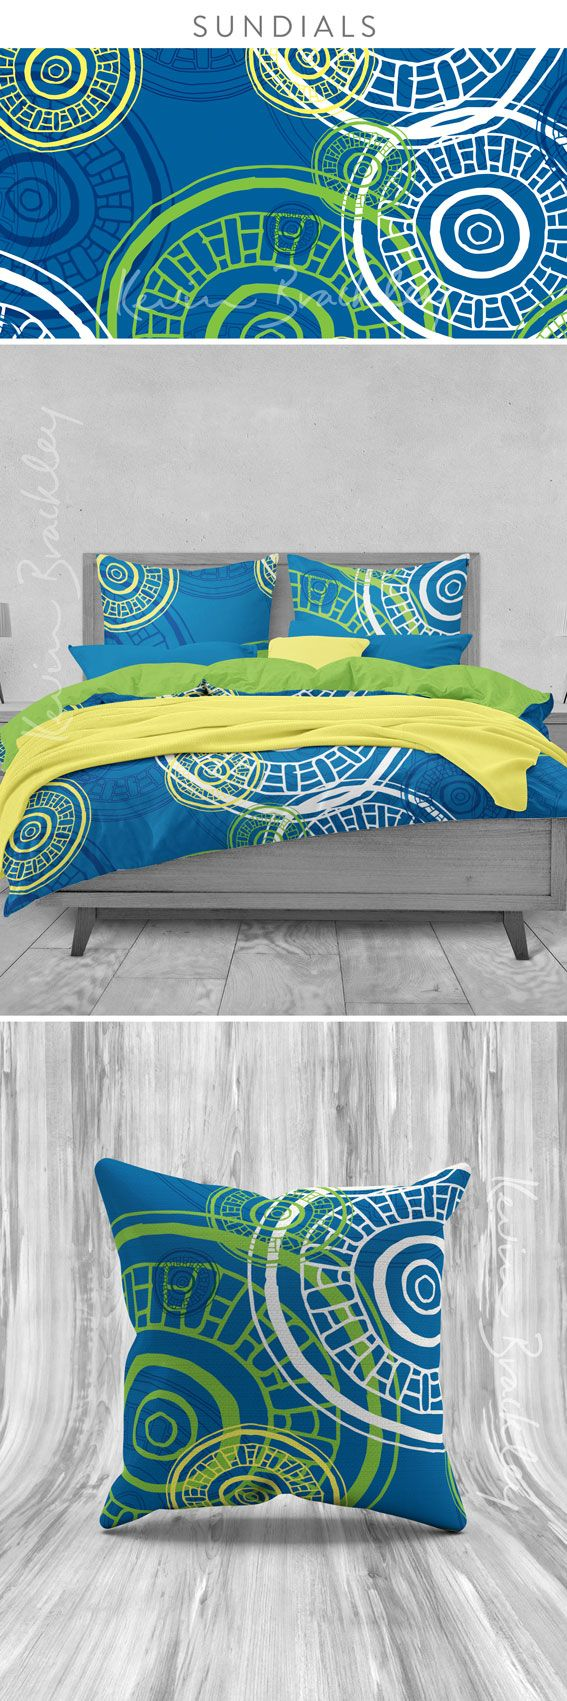 Bedding and cushion in my Sundials desing